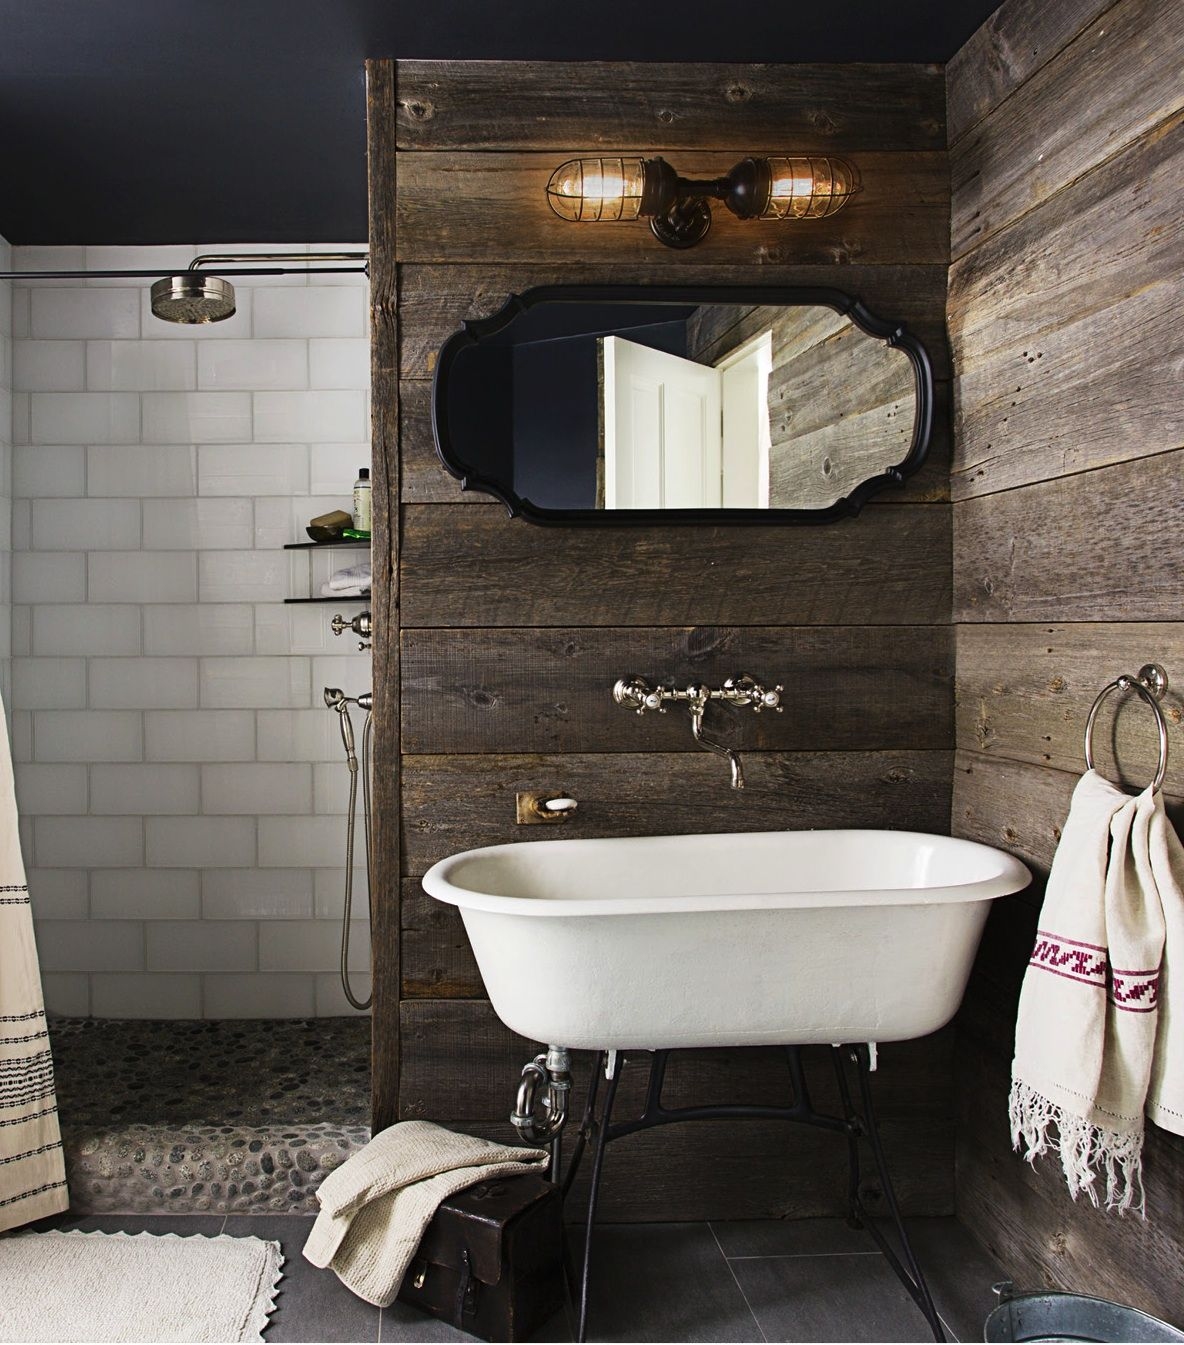 country bathroom designs 2013. A Rustic, Country Bathroom With Barn Wood Walls - House Beautiful September 2013 Designs O